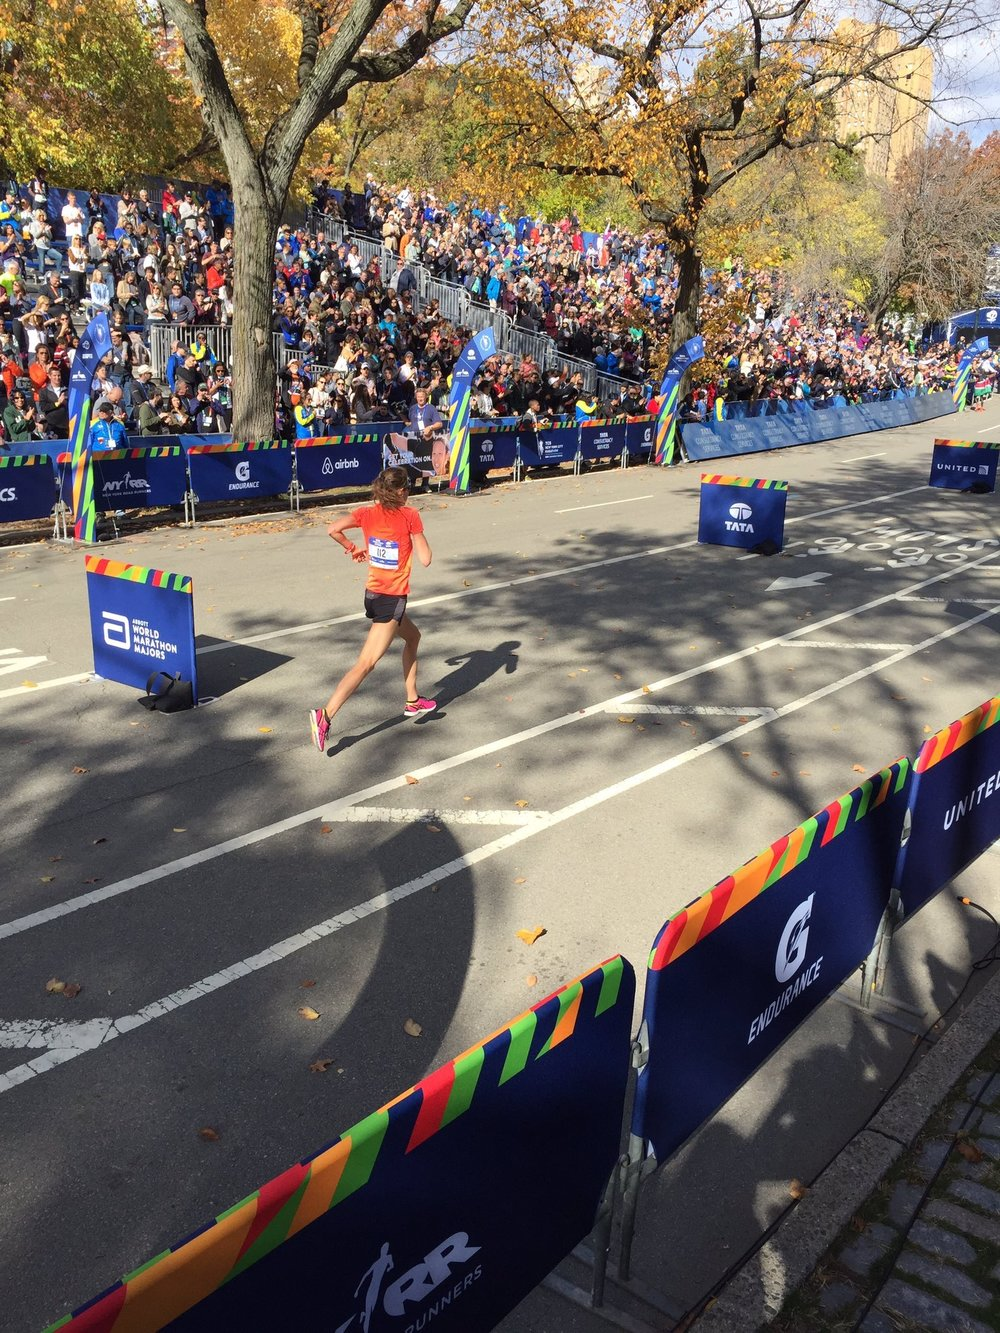 The struggle of those last few steps at the NYC Marathon ...